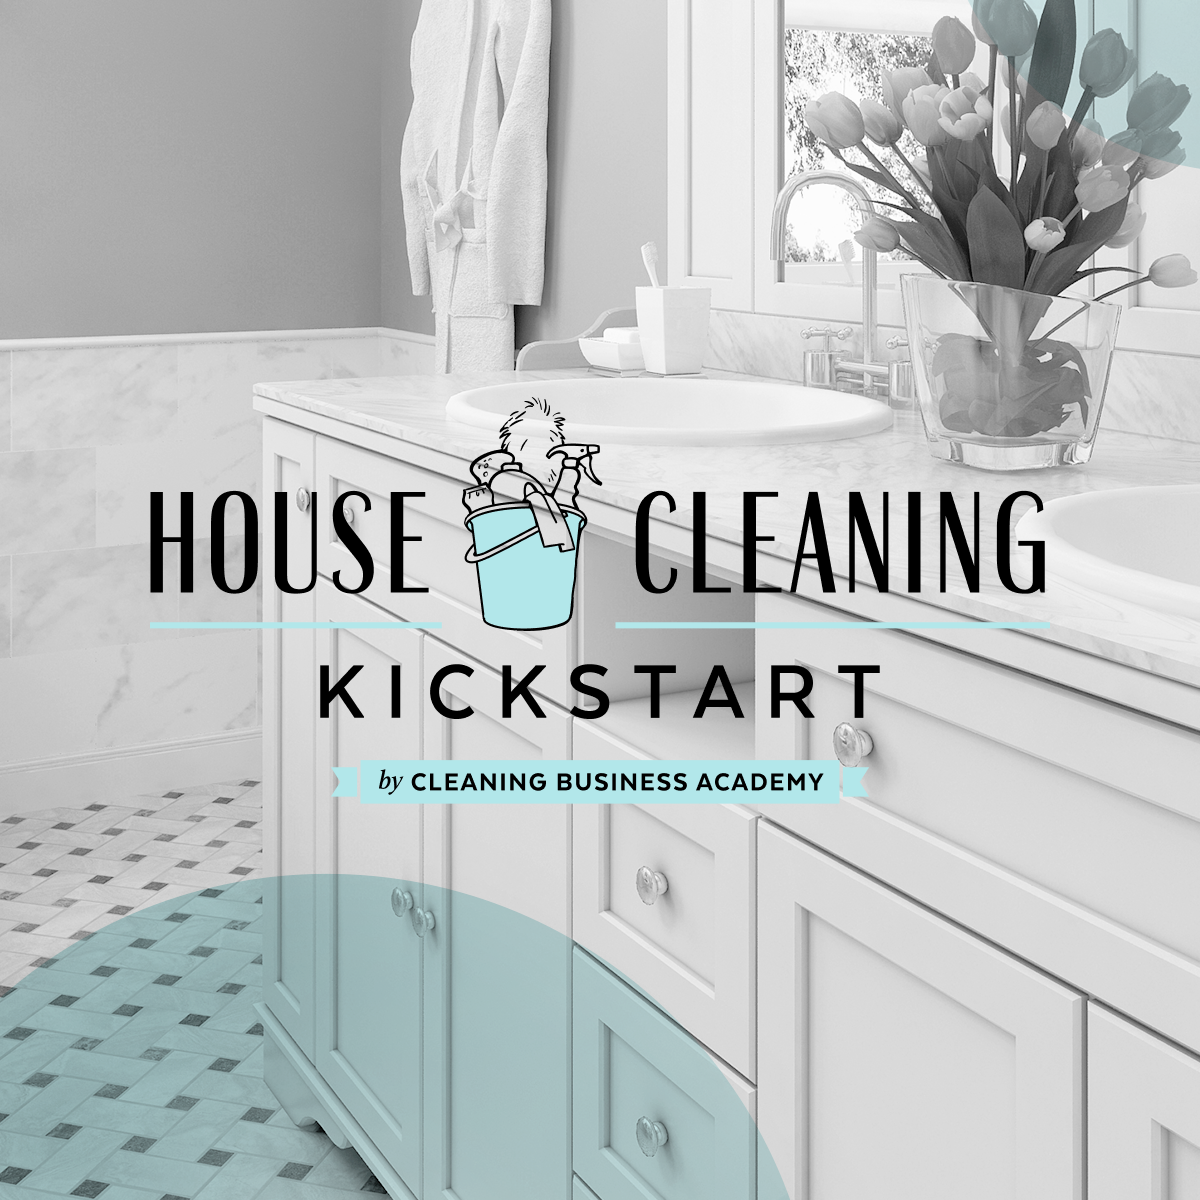 House Cleaning Kickstart Course